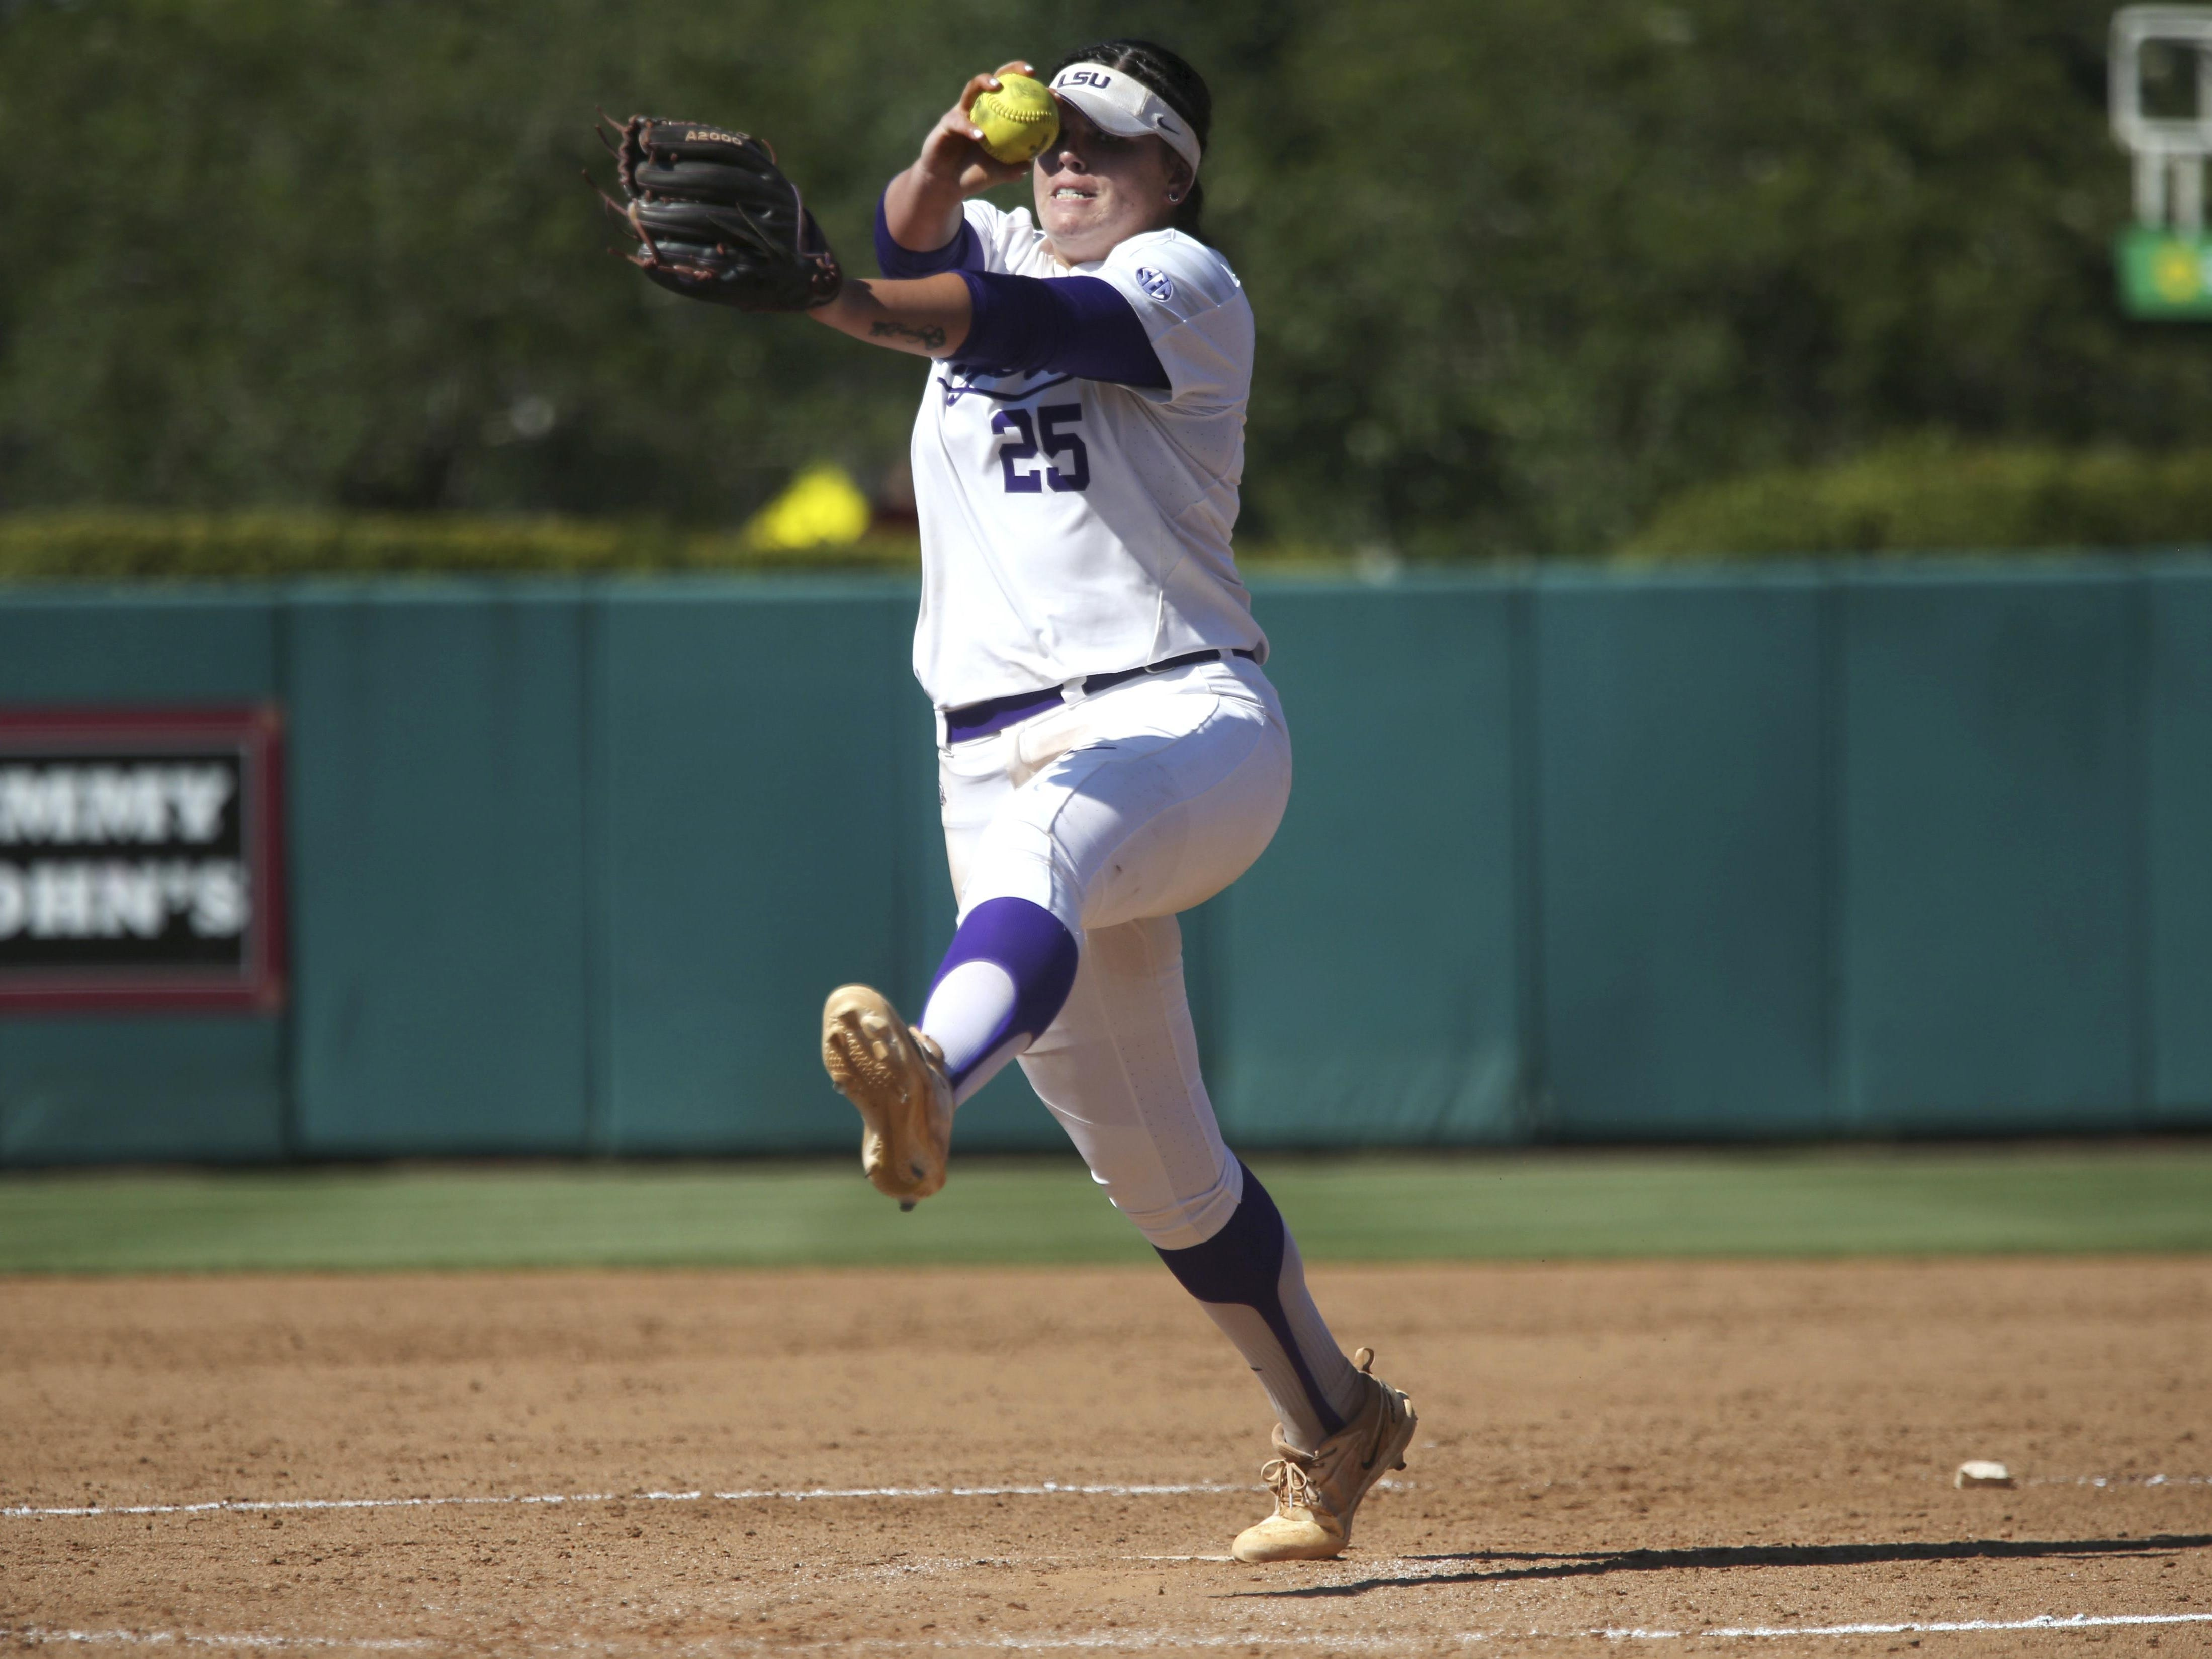 LSU's Allie Walljasper suffered the loss as the Lady Tigers fell out of the WCWS on Saturday.